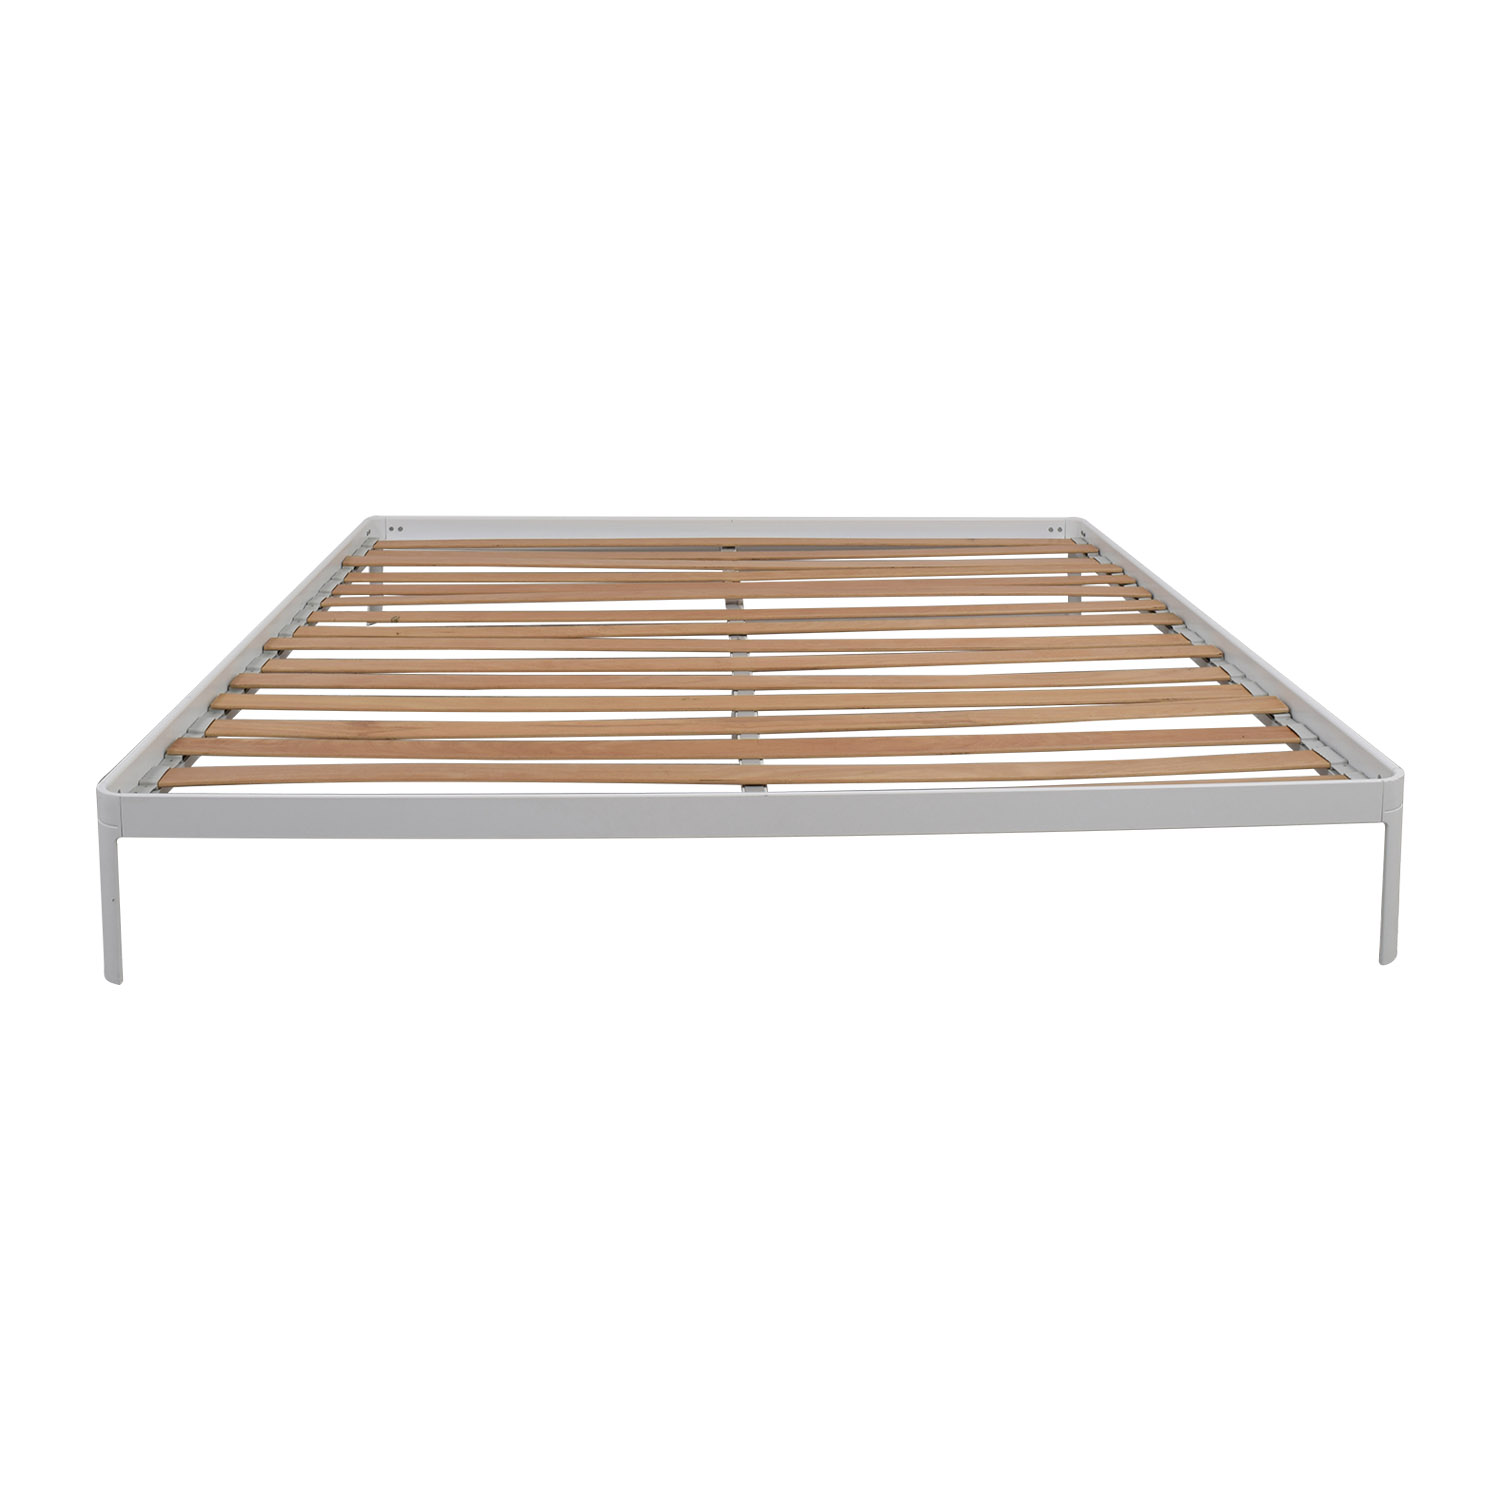 62 off ikea ikea full size pewter bed frame beds - Design within reach bed frame ...